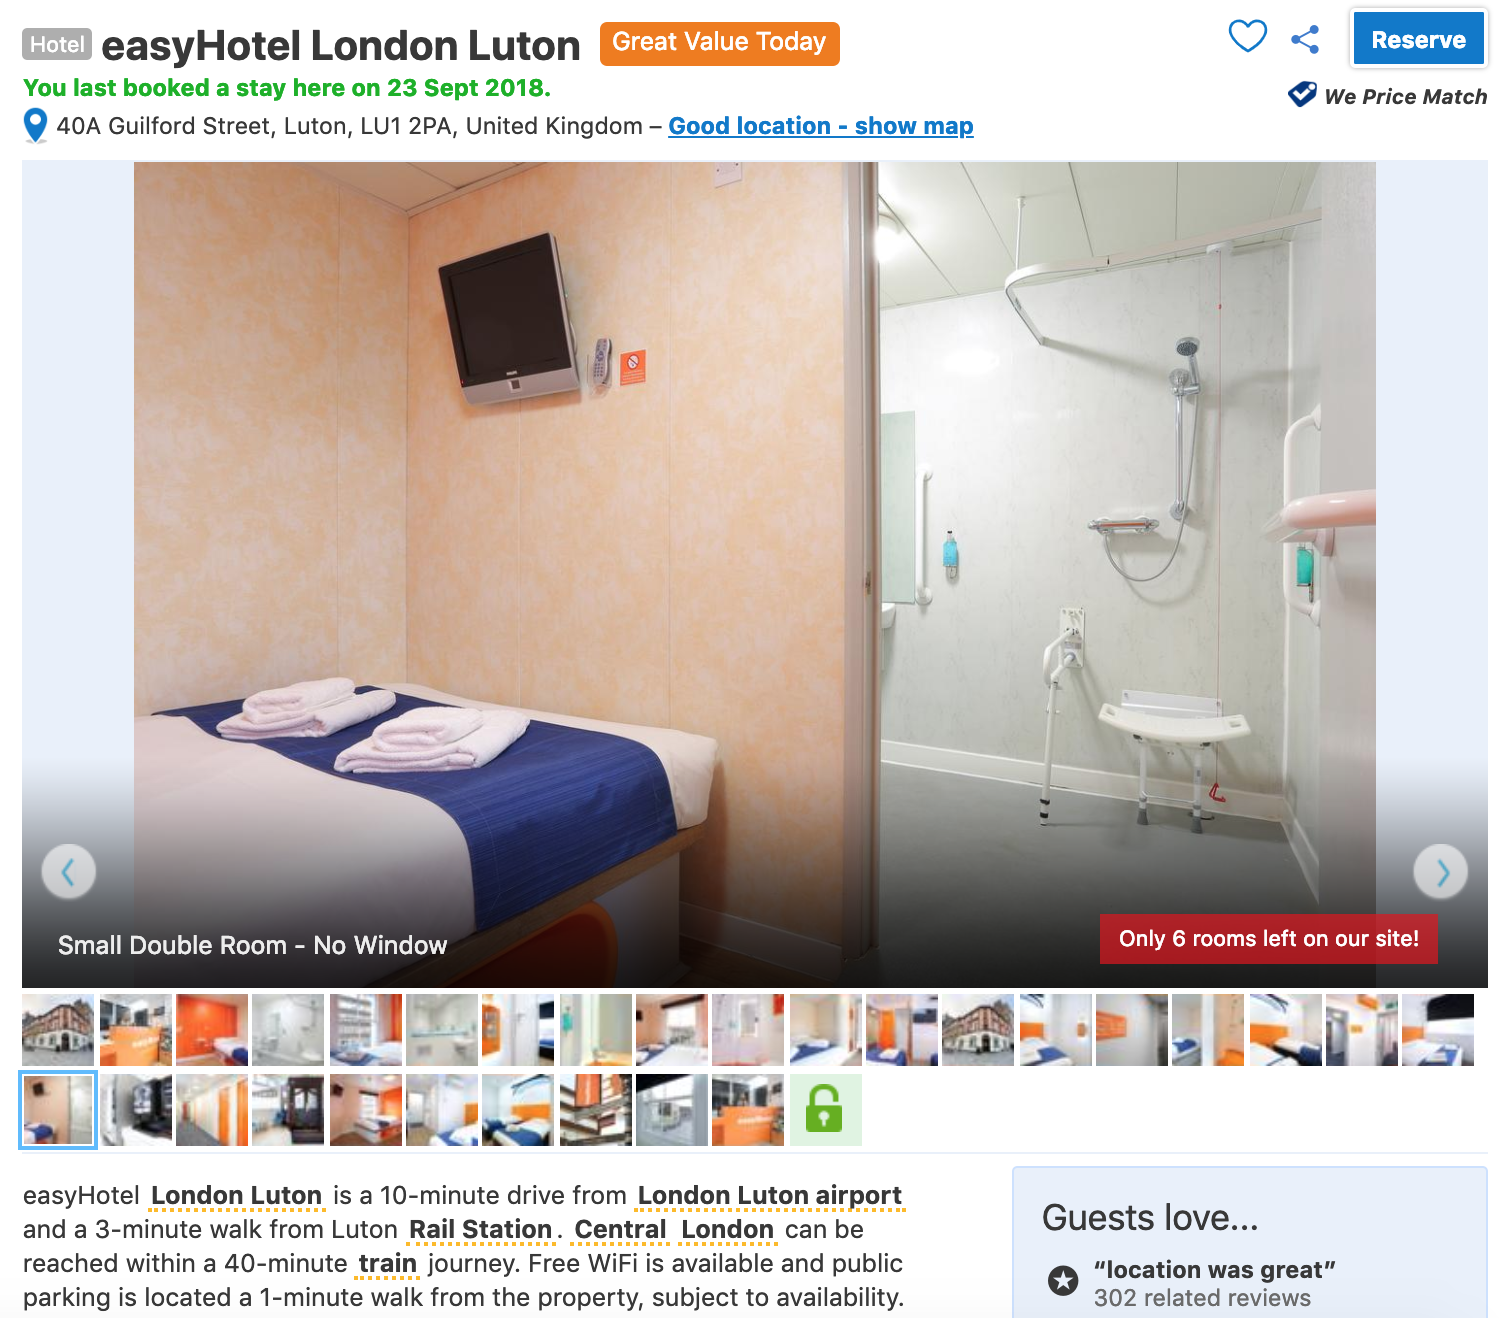 Screenshot of easyHotel London Luton on booking.com